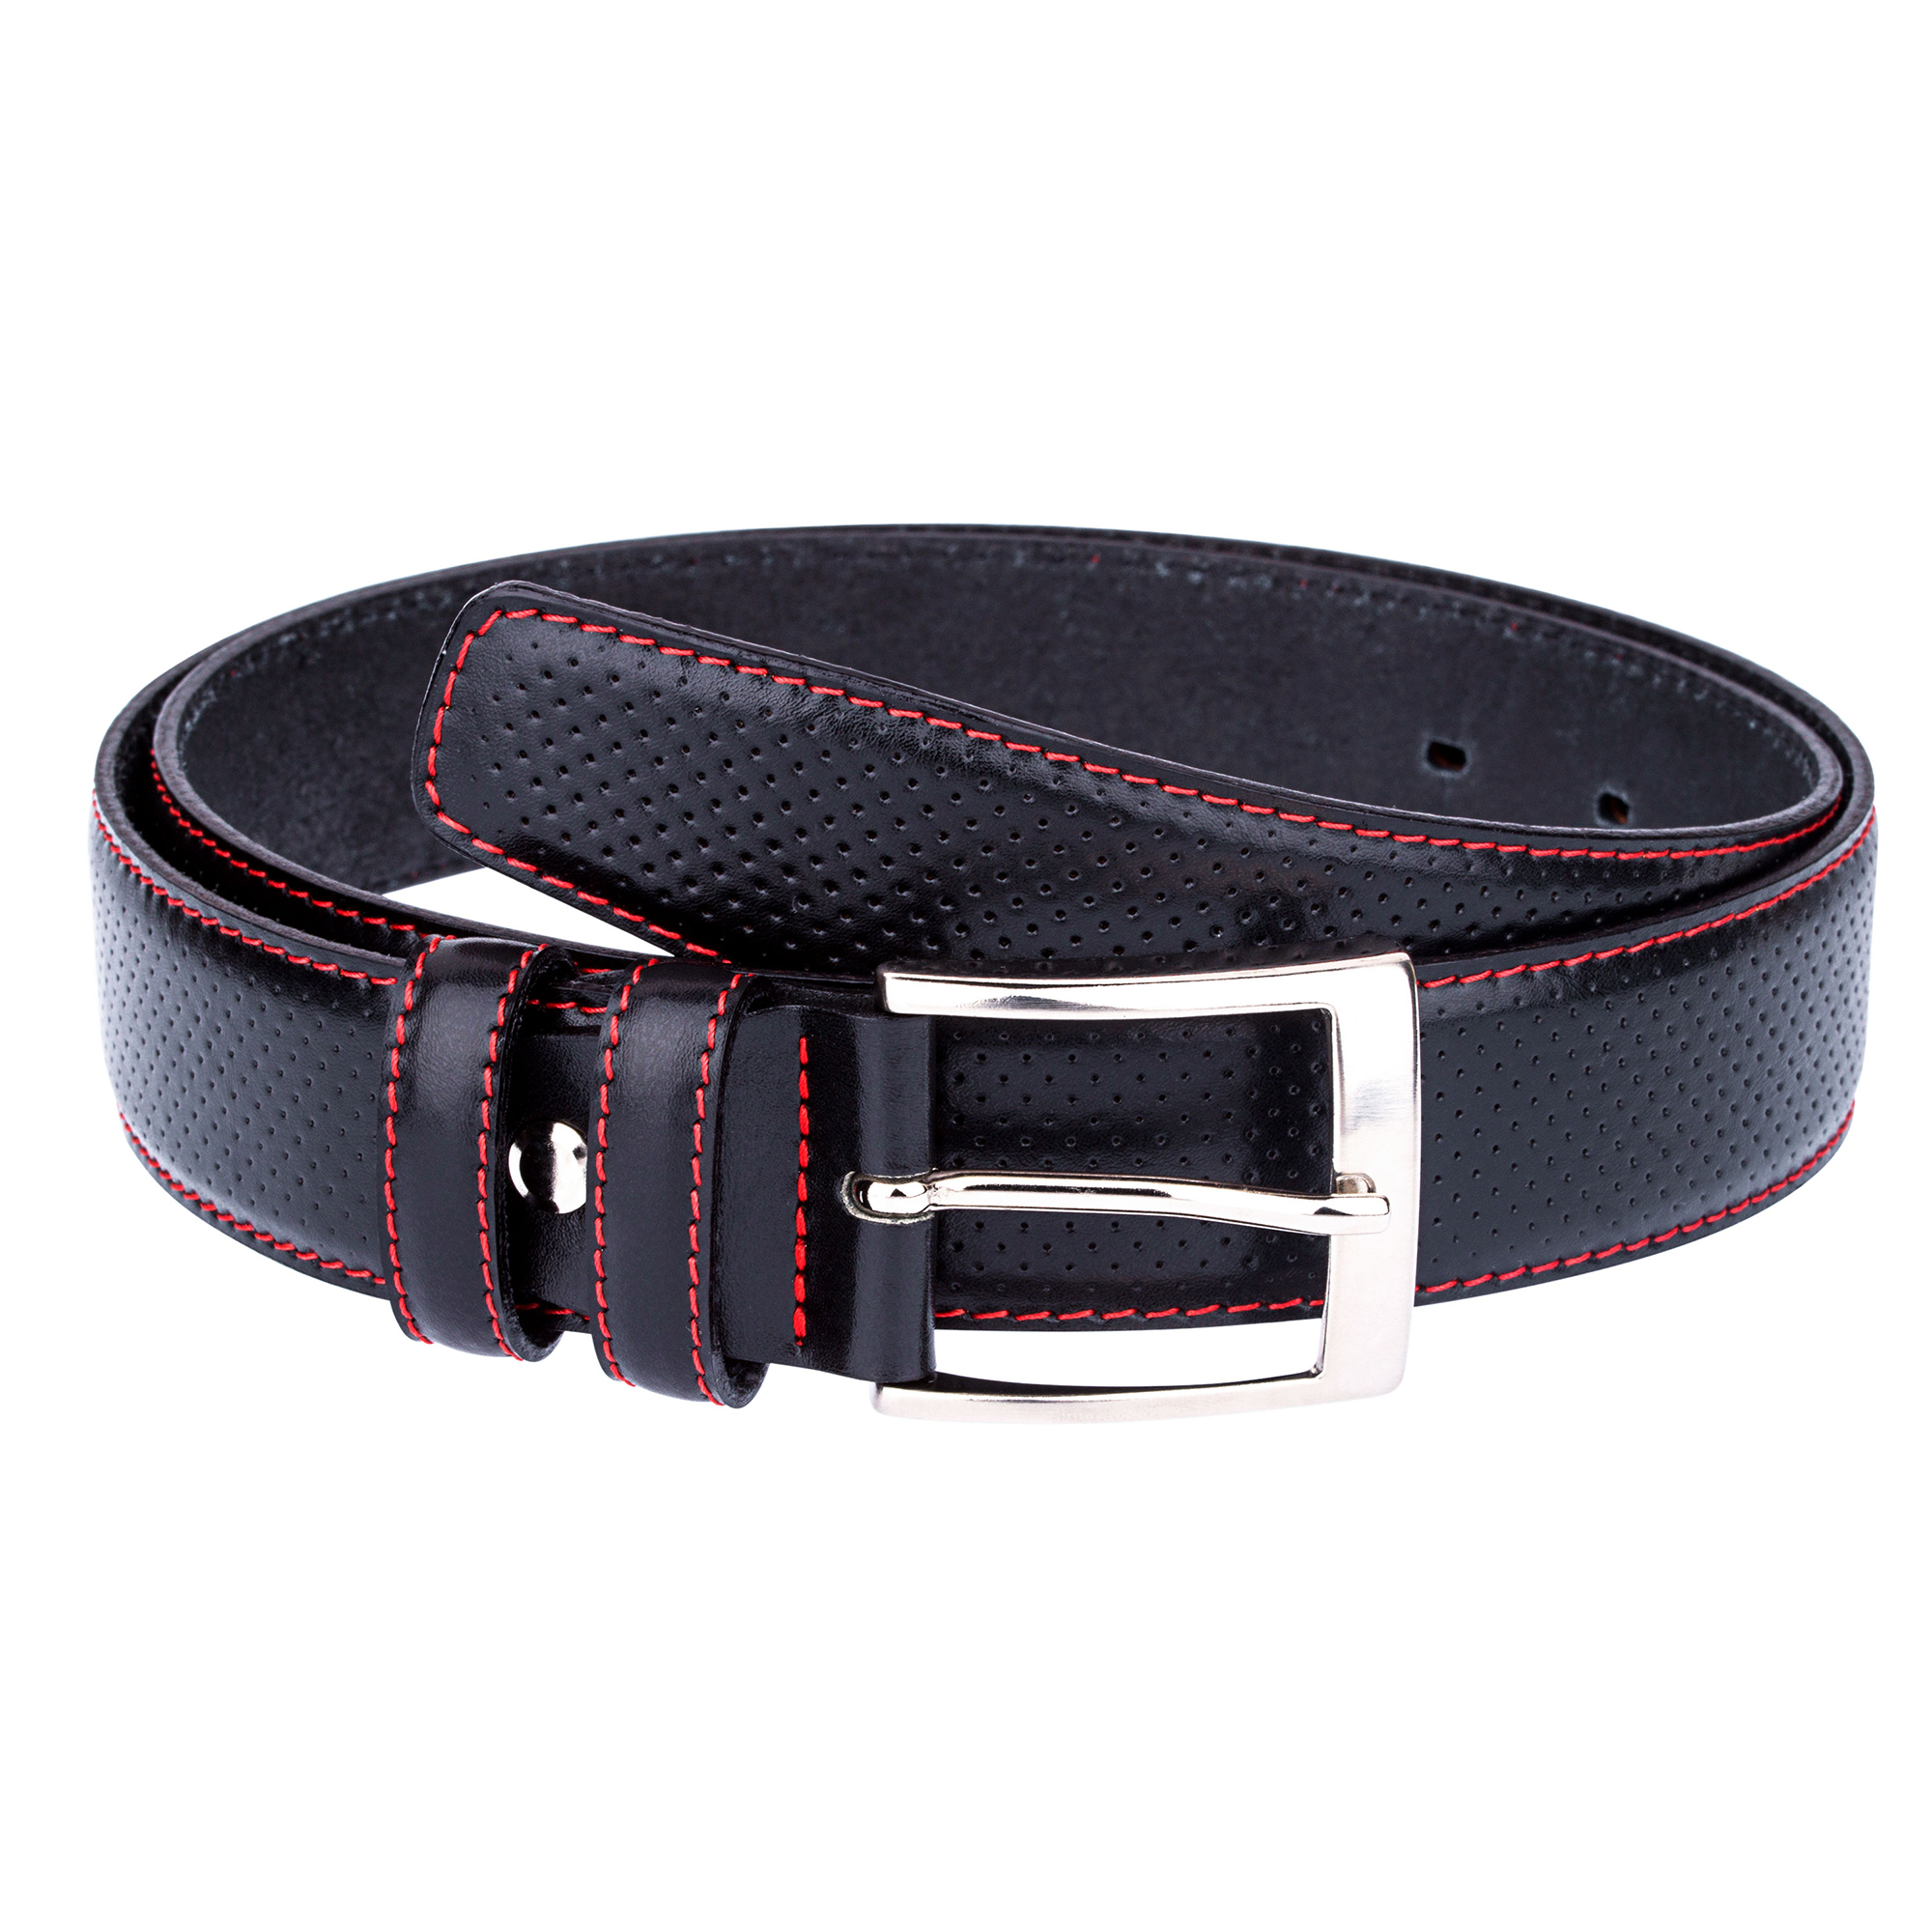 golf belts for black perforated leather belt